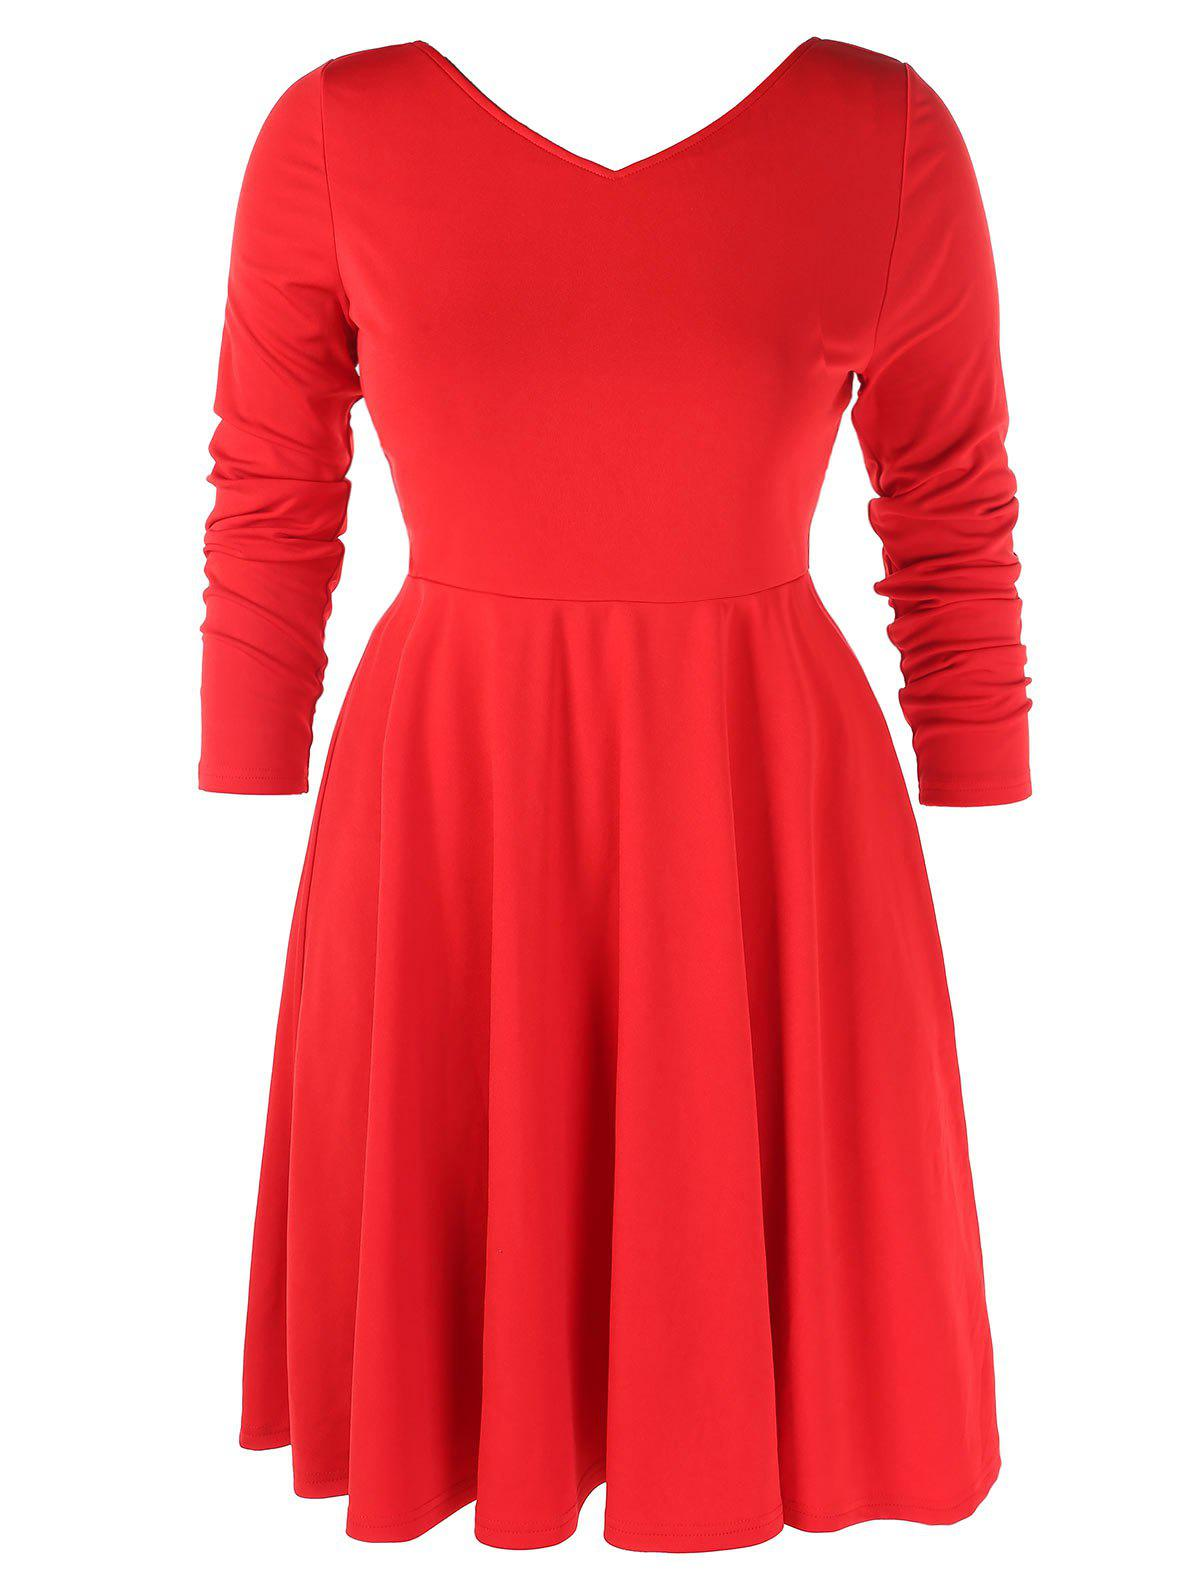 Plus Size Double V Neck High Waist Dress - RED L